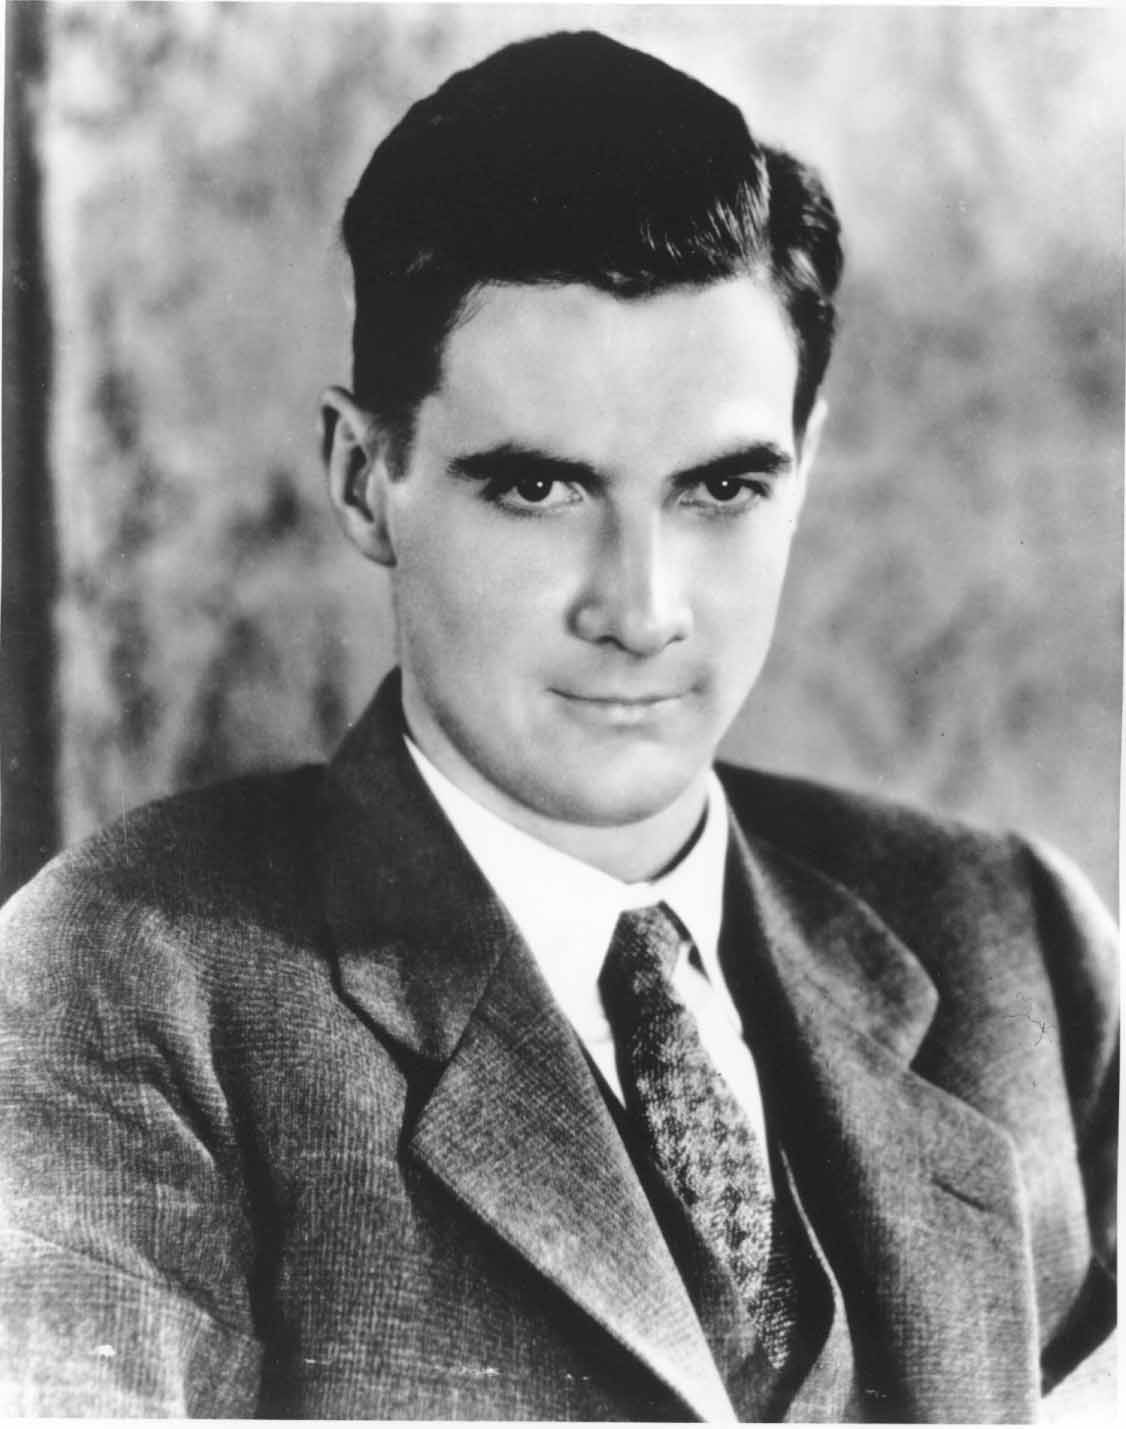 14 -  In 1936, billionaire entrepreneur Howard Hughes hit a pedestrian with his car. The man died, but Hughes was not charged with any crimes as a result of the incident.